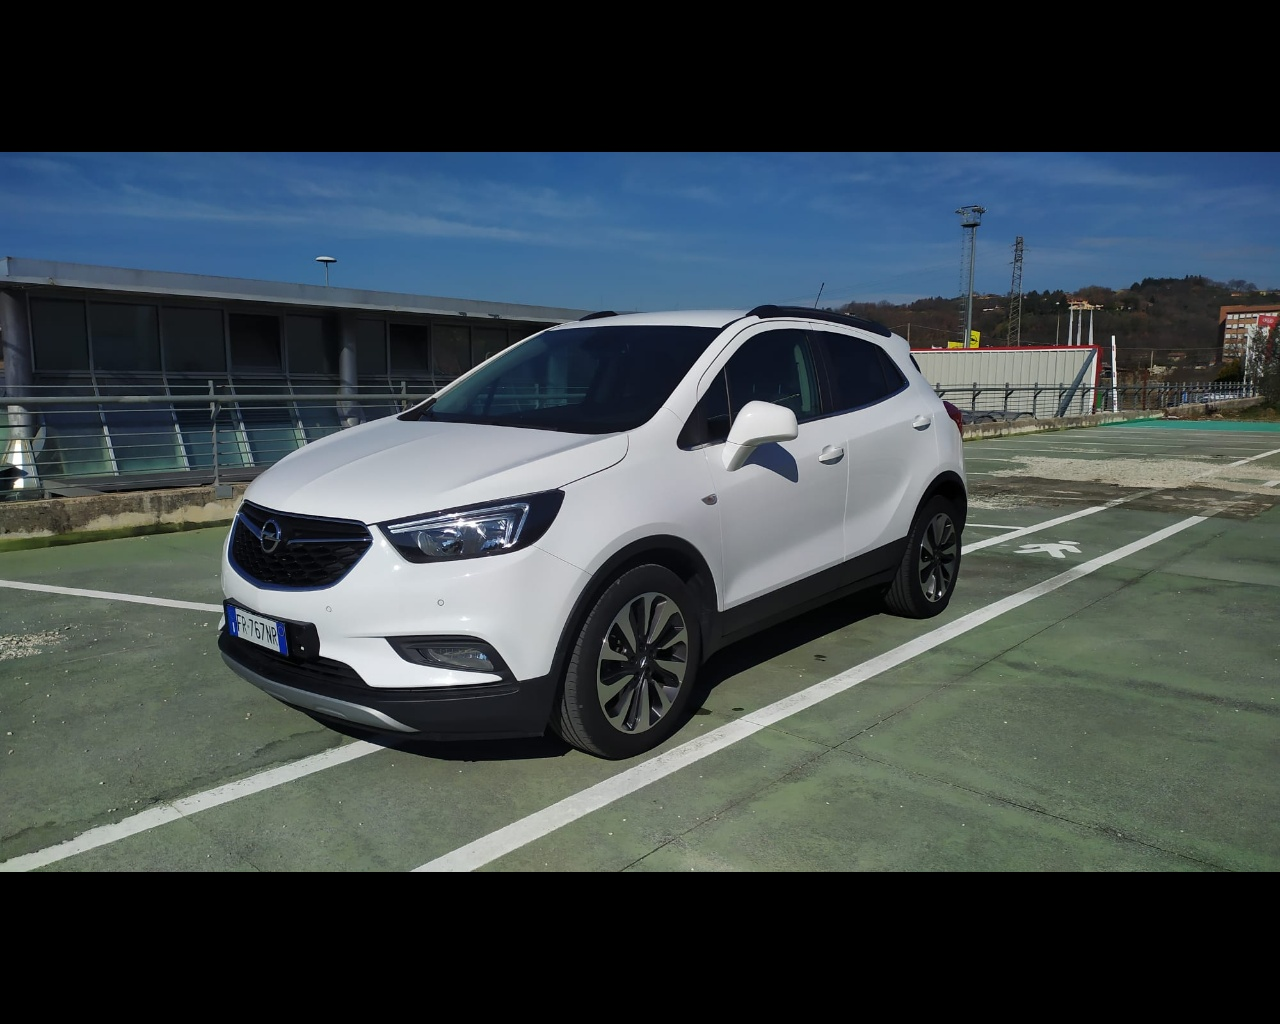 OPEL Mokka X 1.4 t. Innovation Gpl-tech 4x2 140cv